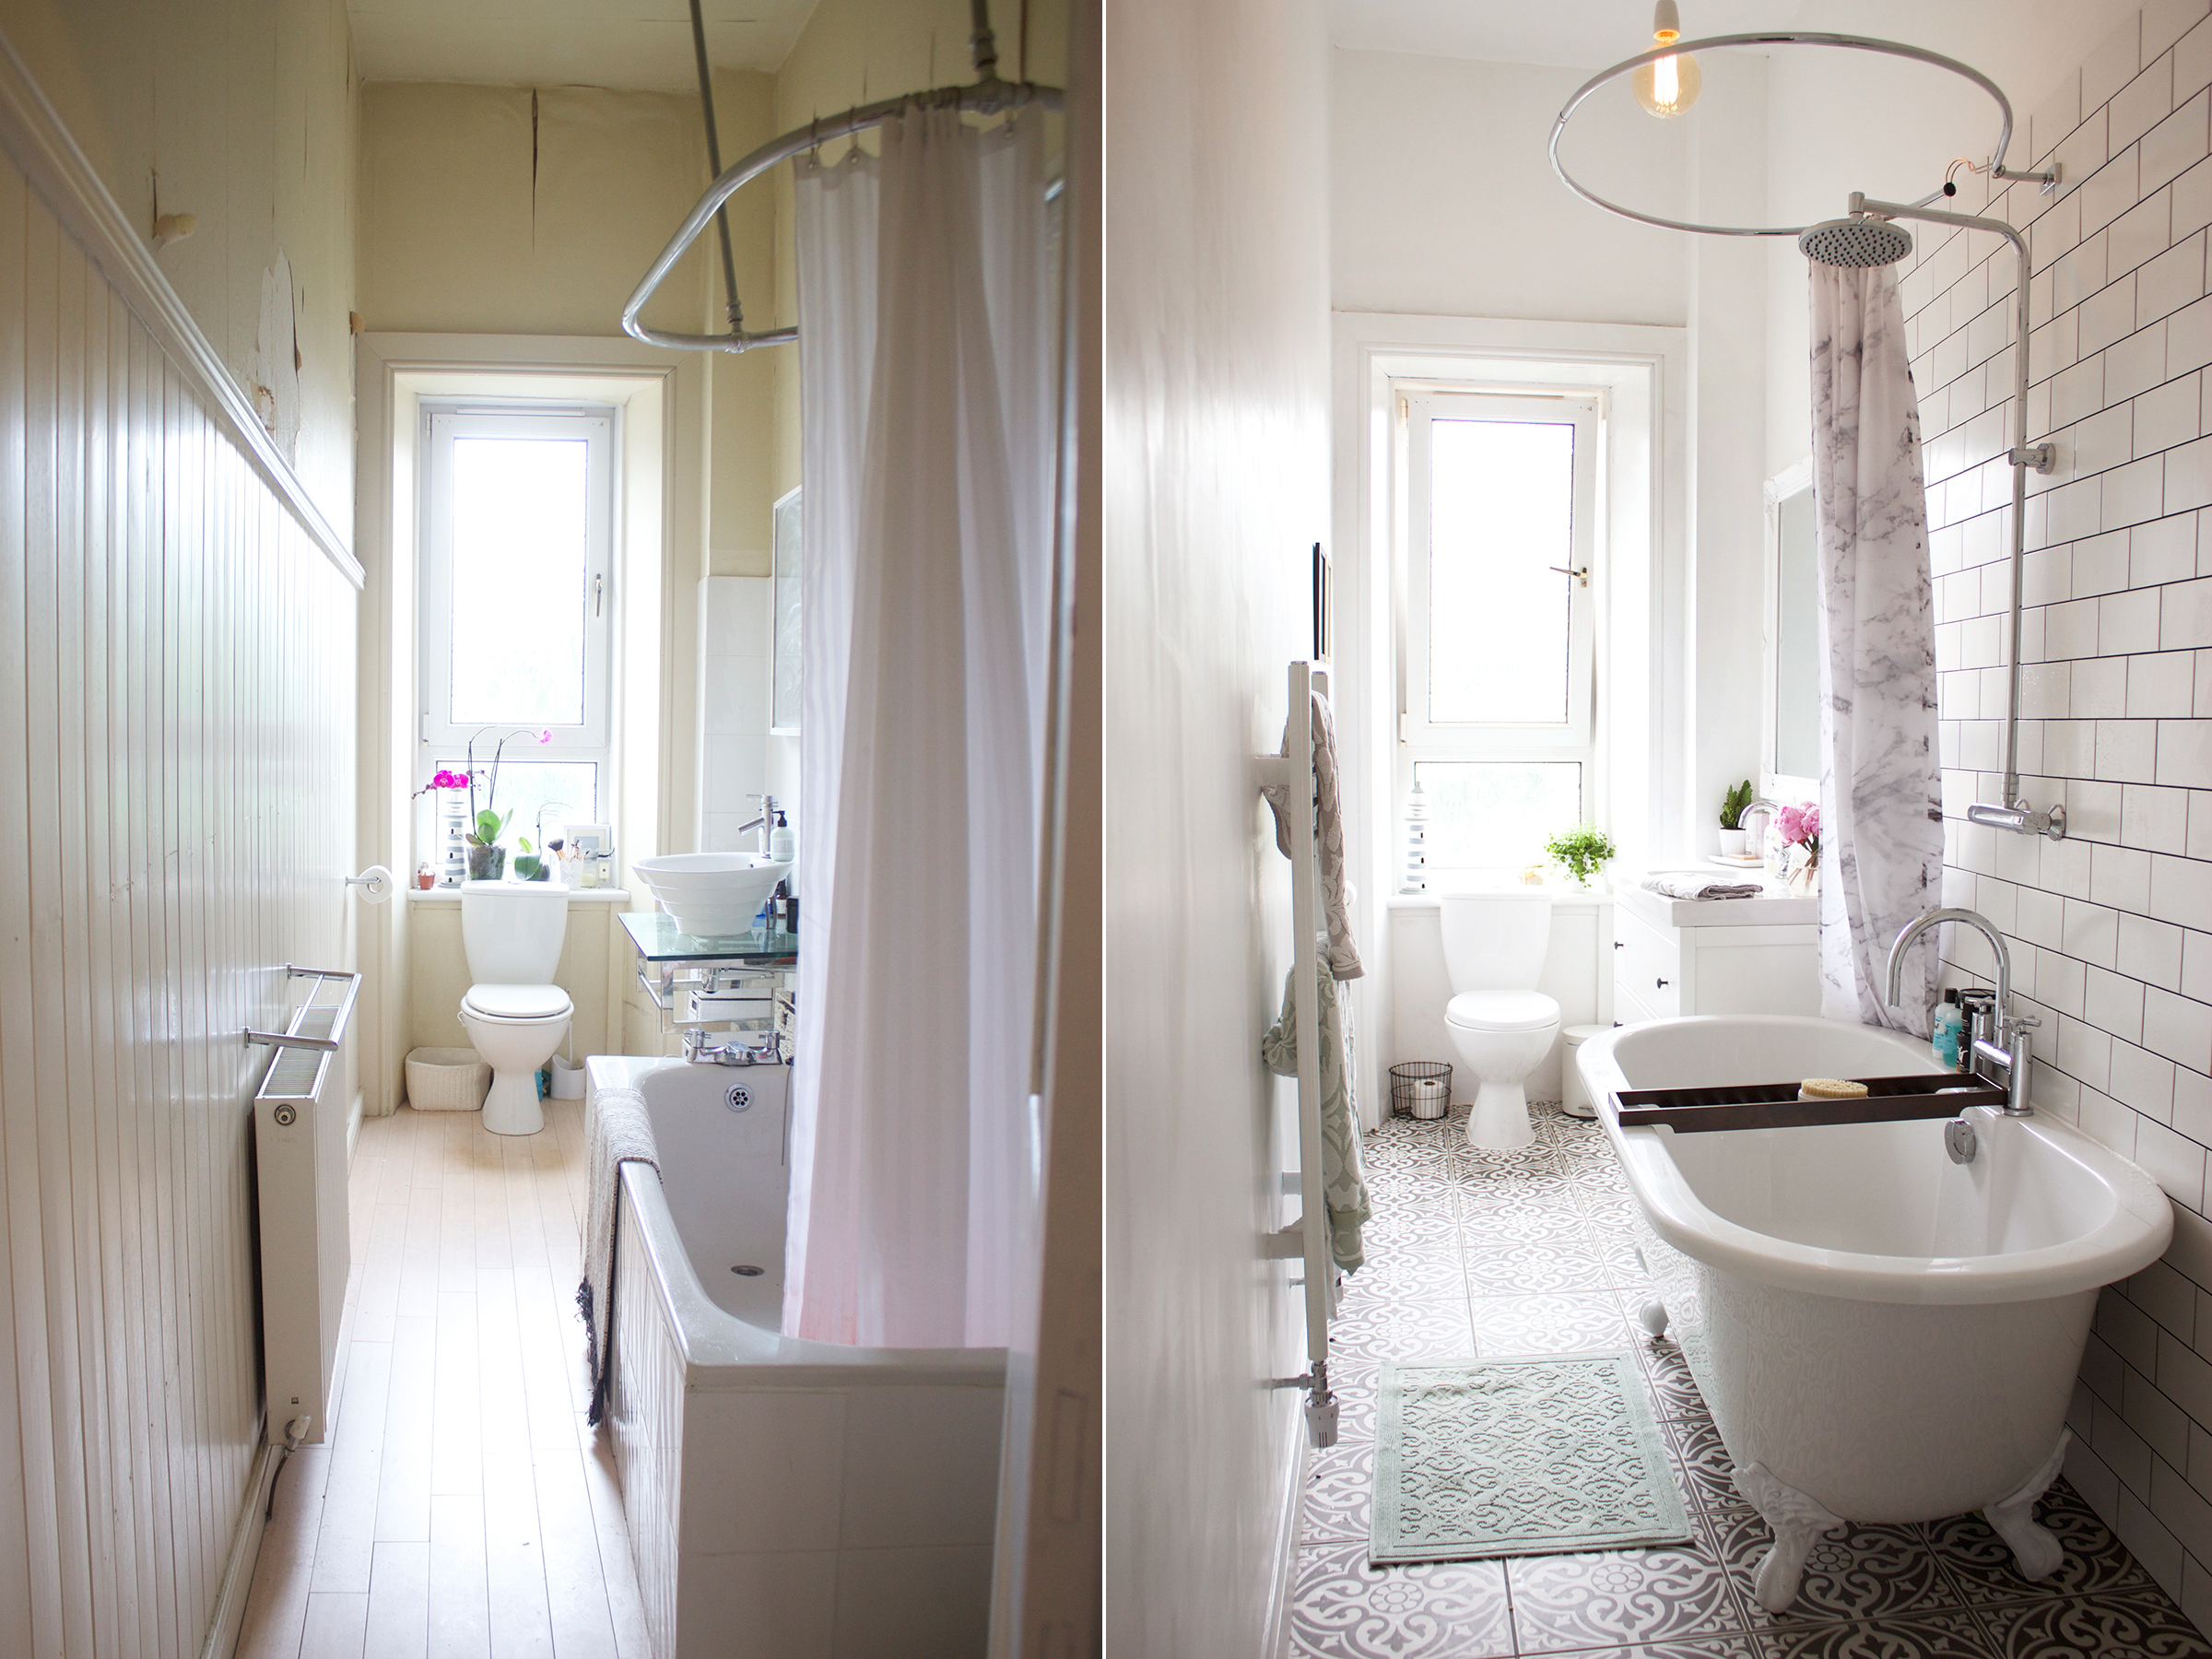 How to make small bathroom bigger - A Bathroom Makeover Before Amp After Kate La Vie